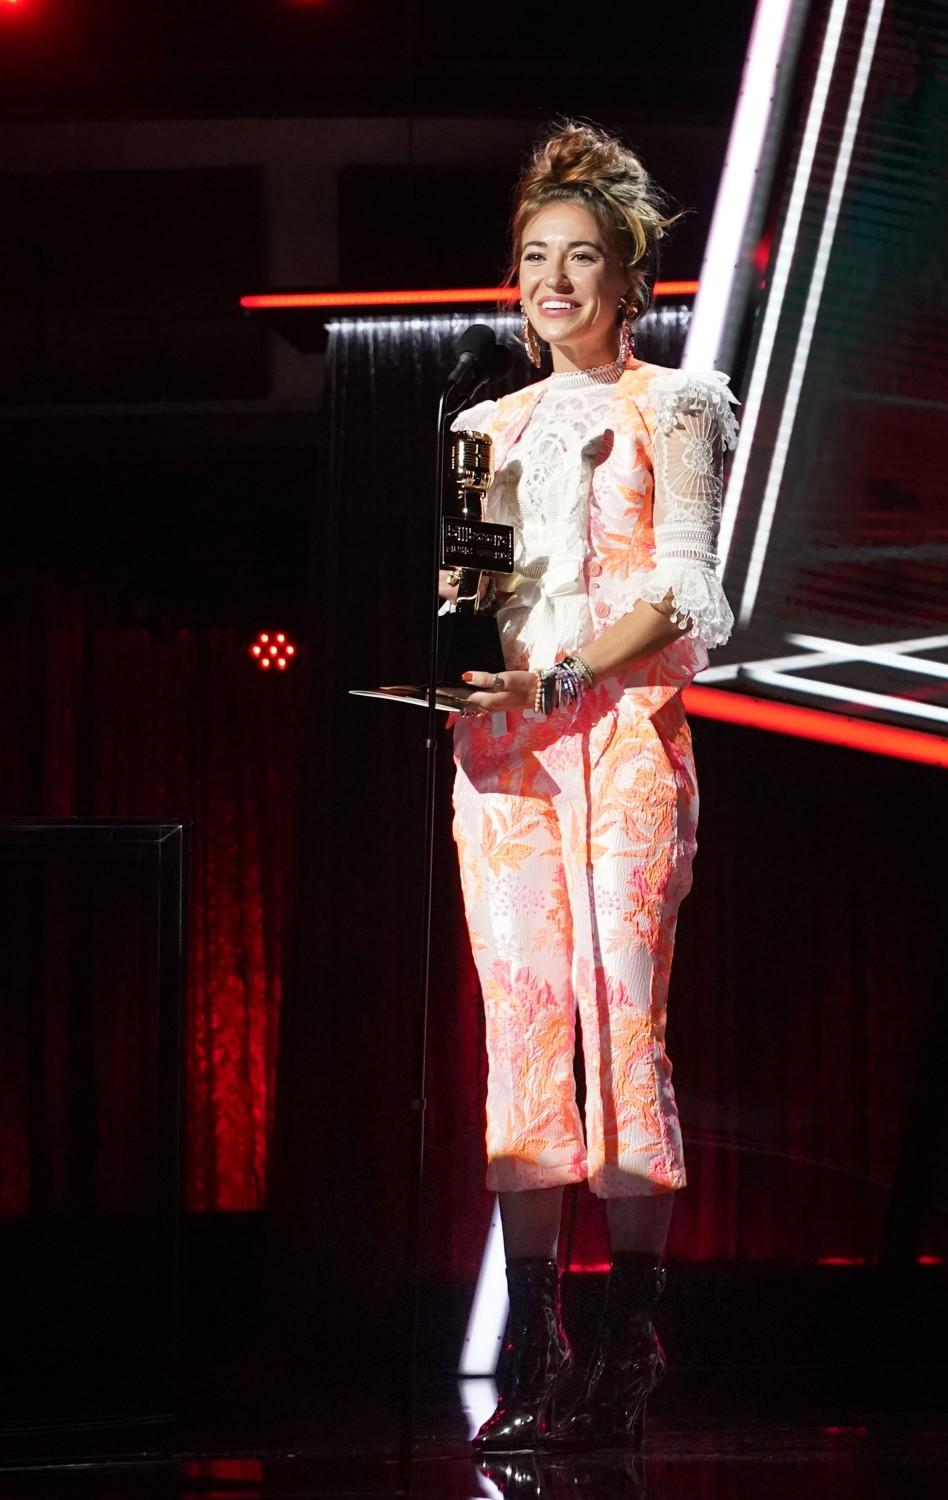 Lauren Daigle, in a lace and floral print pantsuit, holds her award.